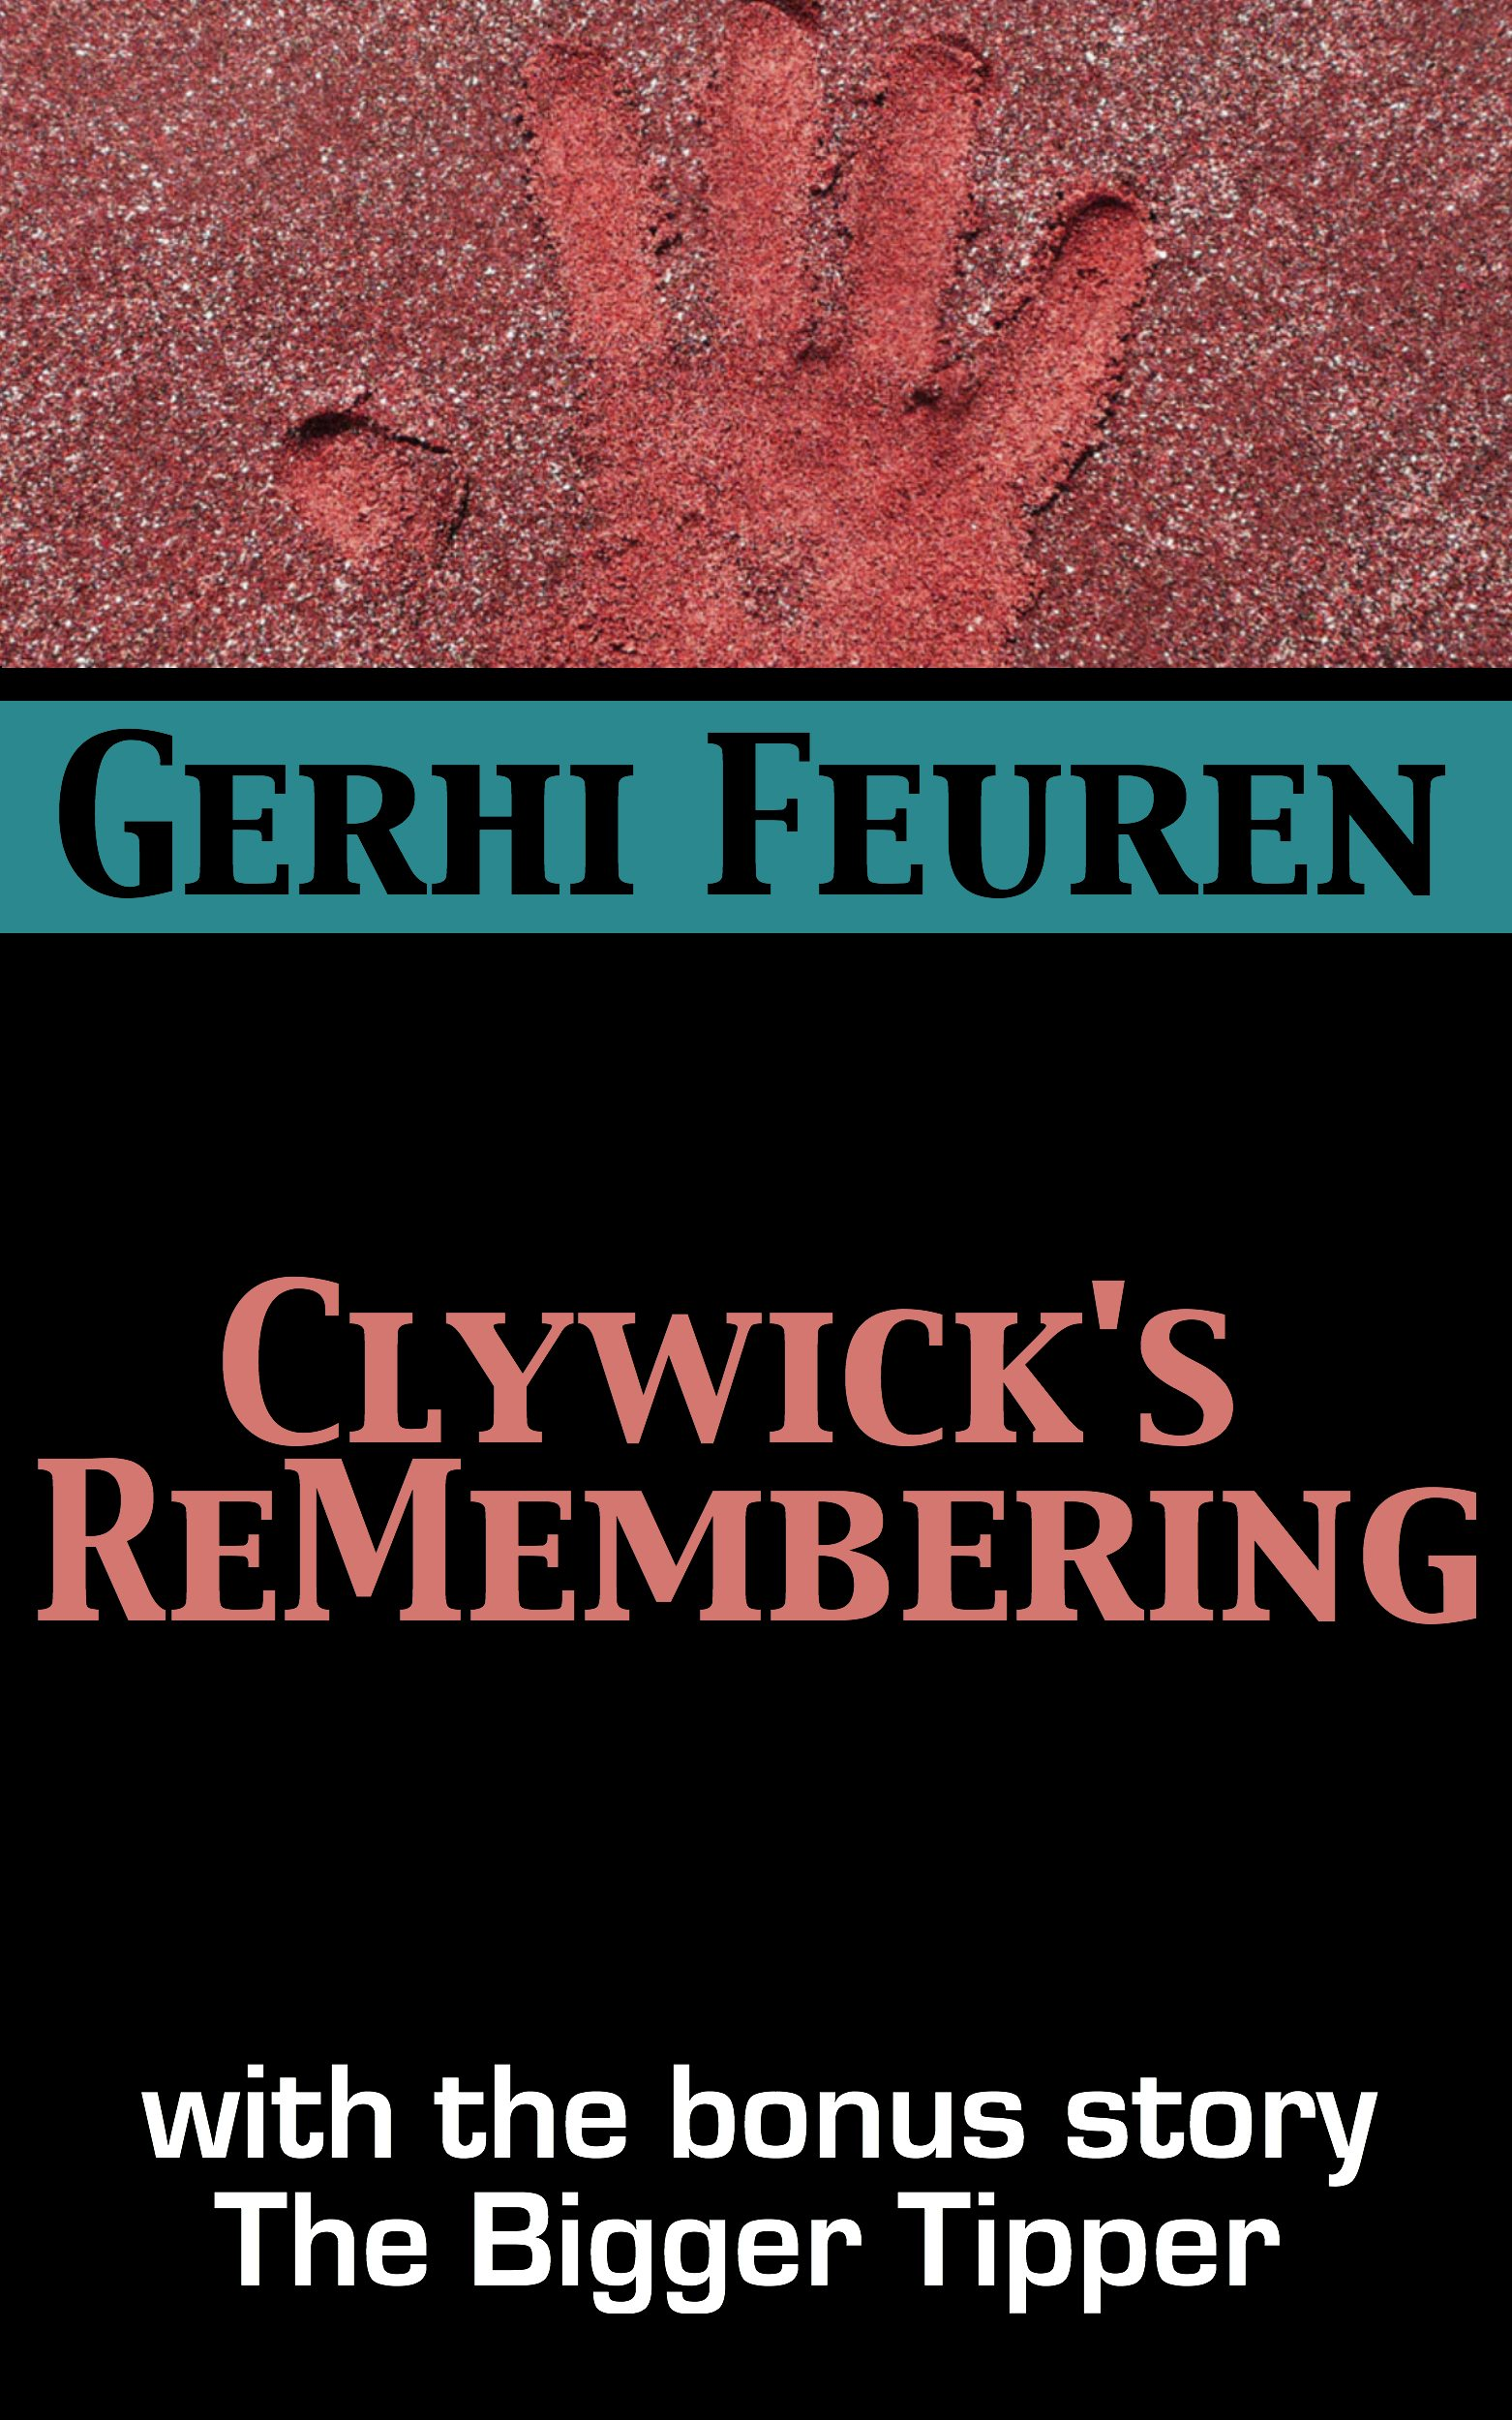 Clywick's ReMembering